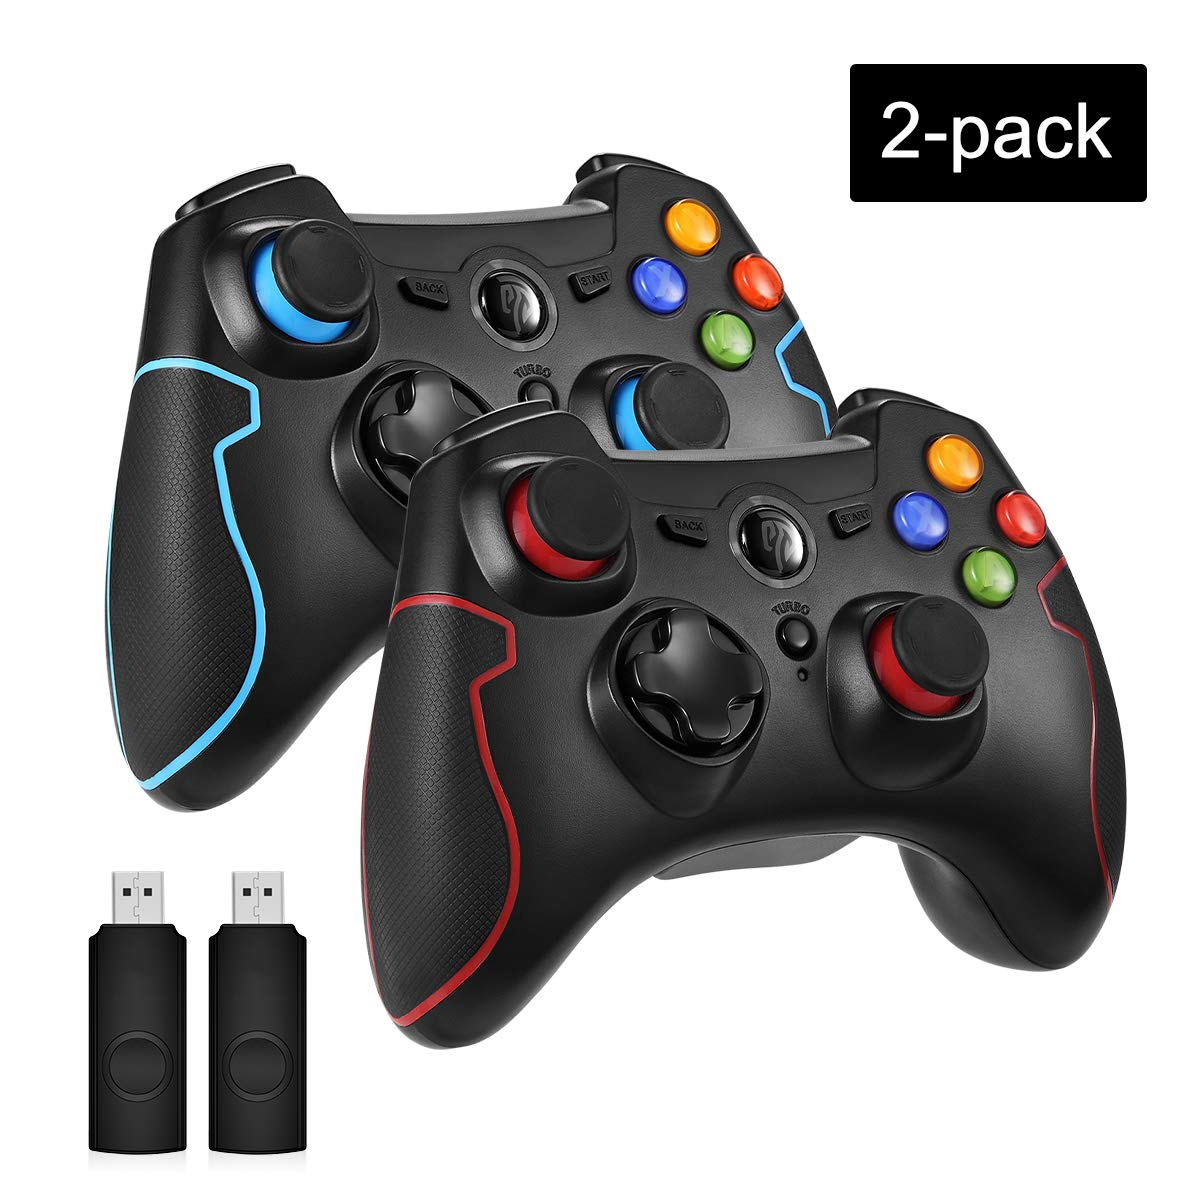 EasySMX 2.4G Wireless Controller for PS3, PC Gamepads with Vibration Fire Button Range up to 10m Support PC,Laptop, Android and TV BOX (black blue and black red)